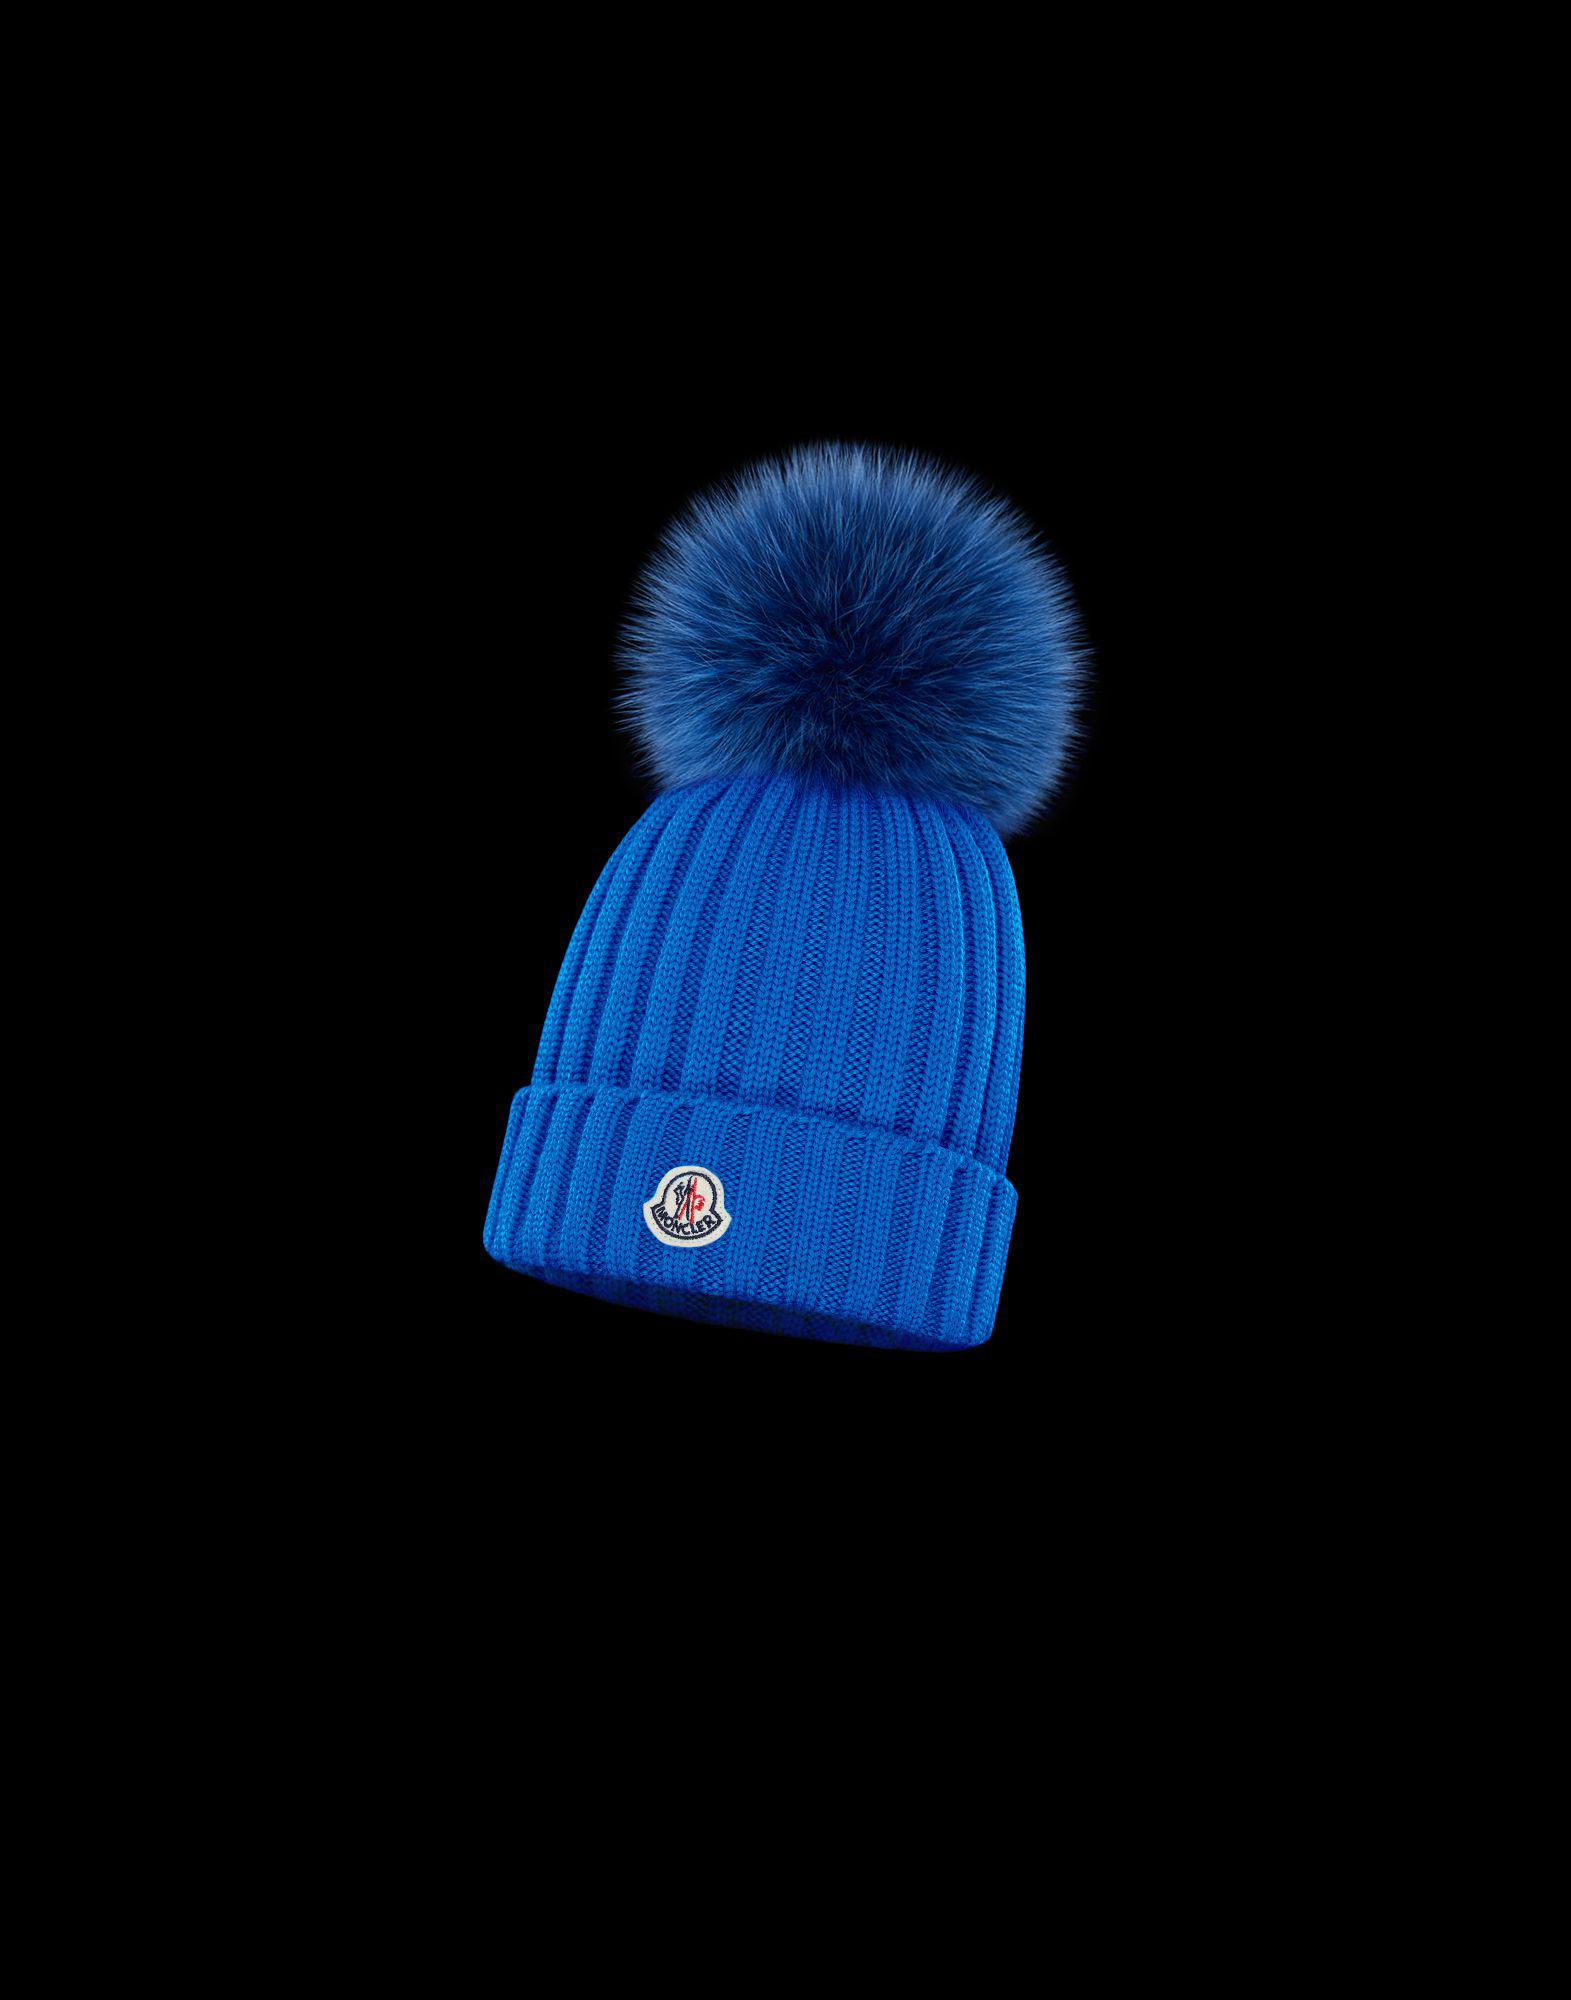 270a6a3f1cc Lyst - Moncler Hat in Blue